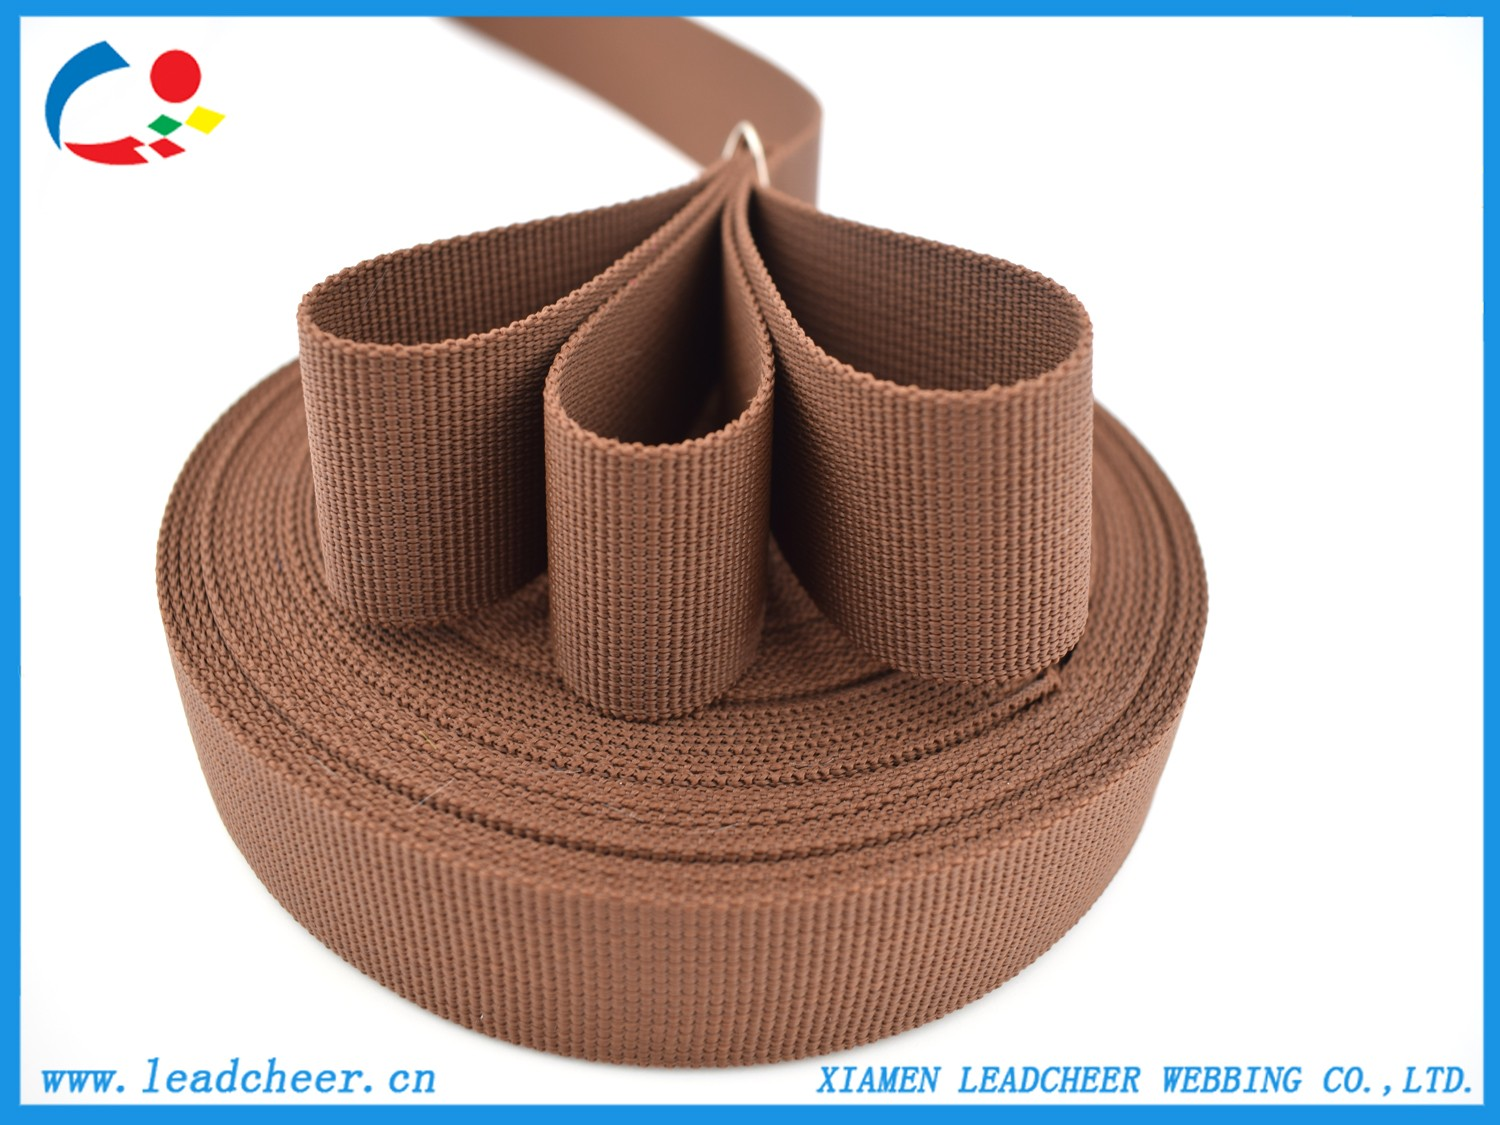 High quality PP Webbing Tape Quotes,China PP Webbing Tape Factory,PP Webbing Tape Purchasing